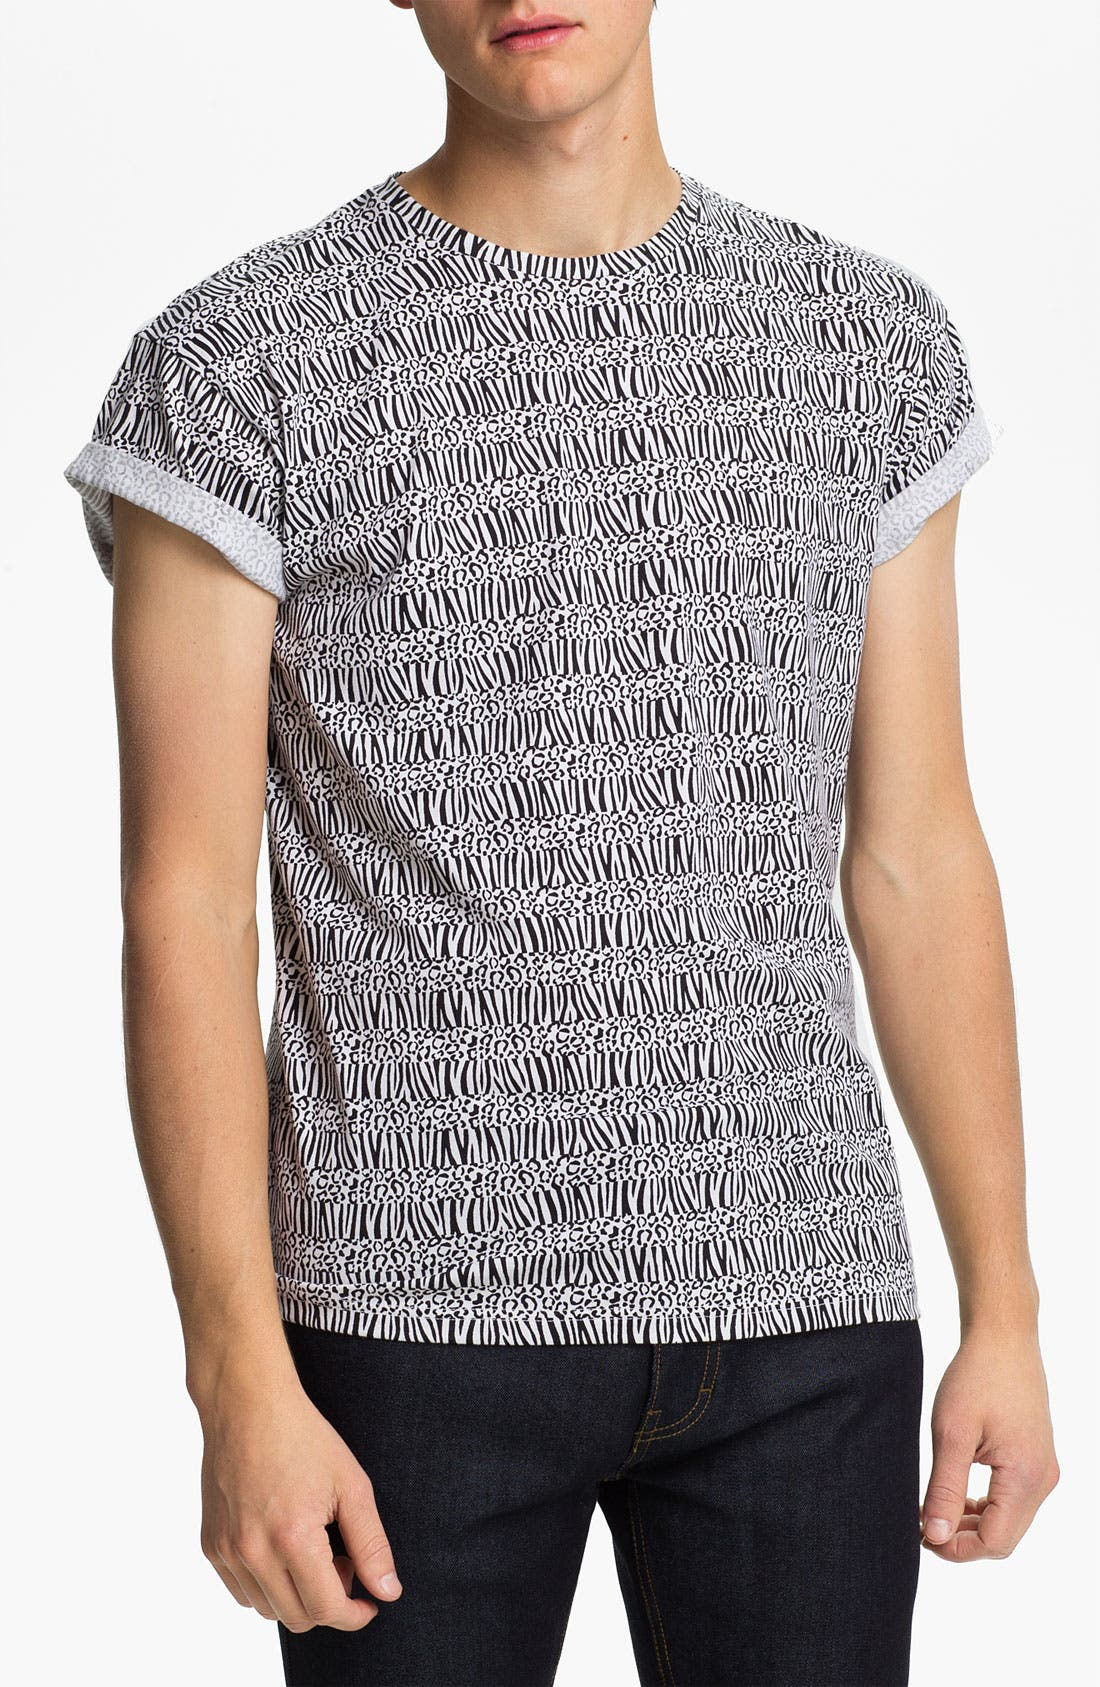 Main Image - Topman 'High Roller' All Over Animal Print T-Shirt